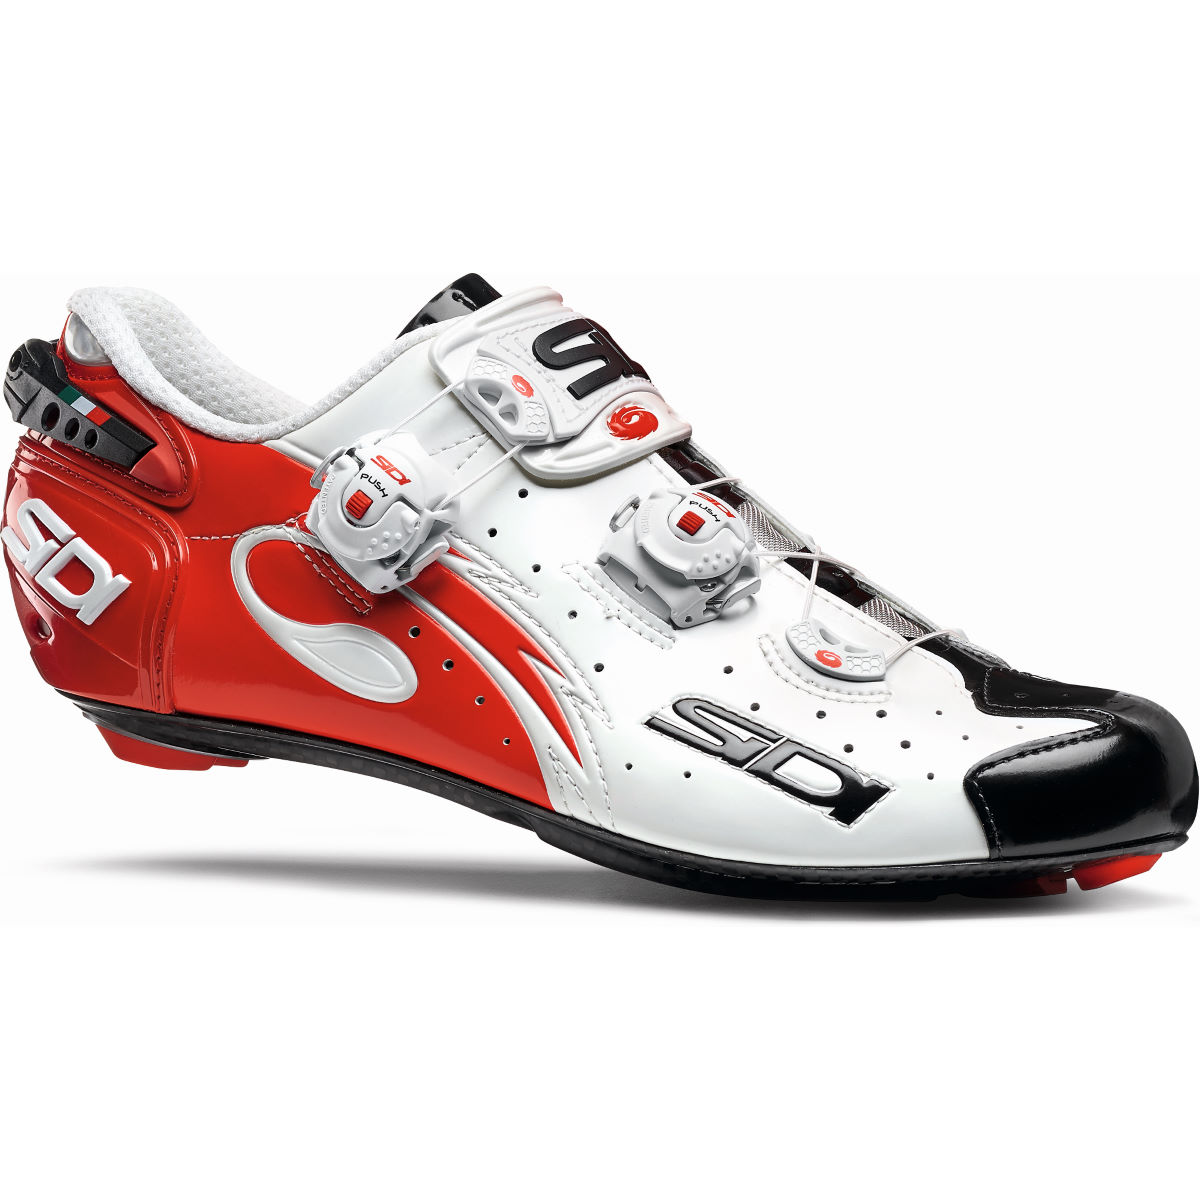 Sidi Wire Carbon Vernice Road Shoes - 40.5 White/Black/Red